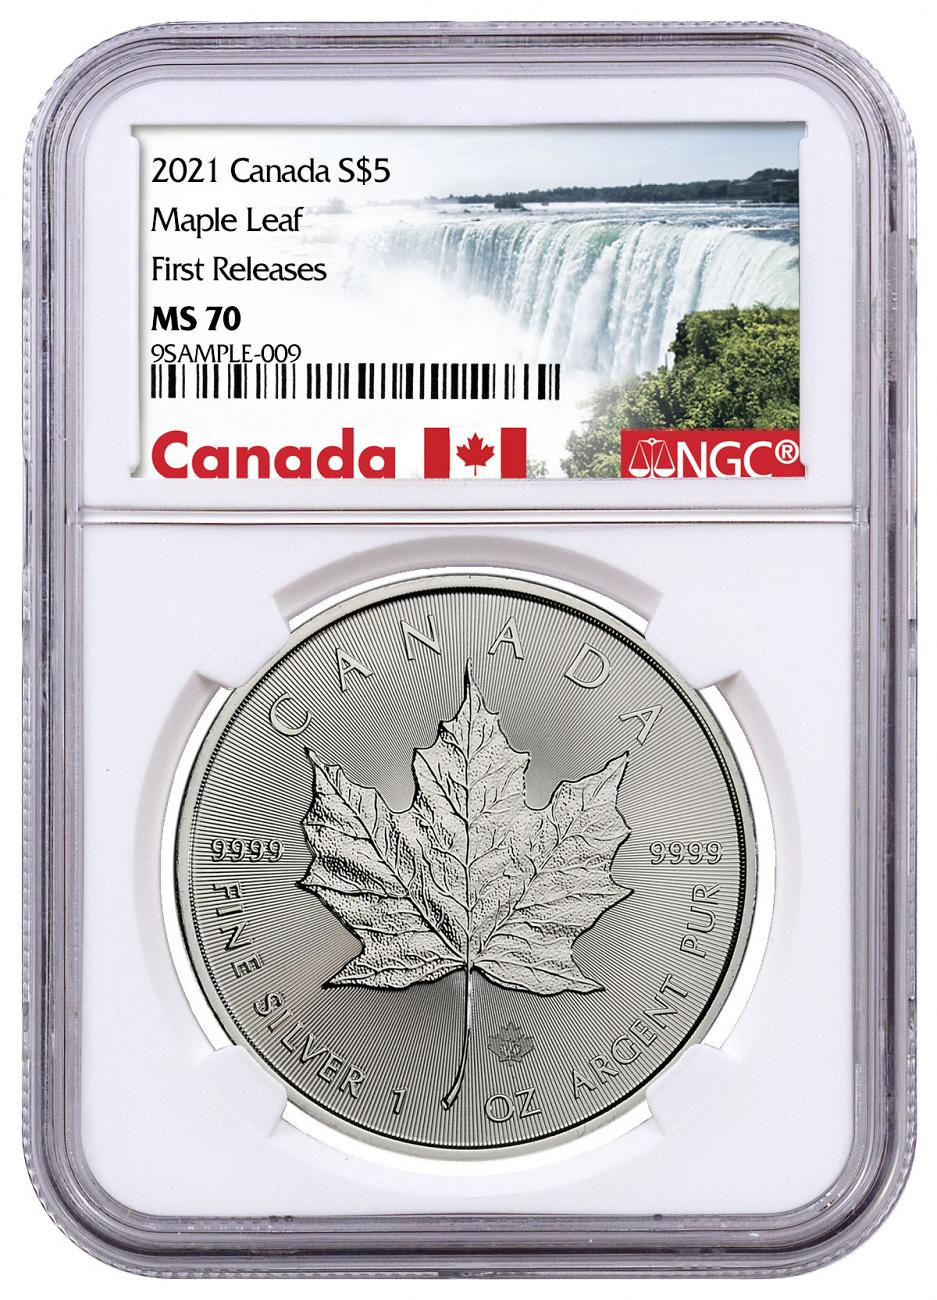 2021 Canada 1 oz Silver Maple Leaf $5 Coin NGC MS70 FR Exclusive Canada Label